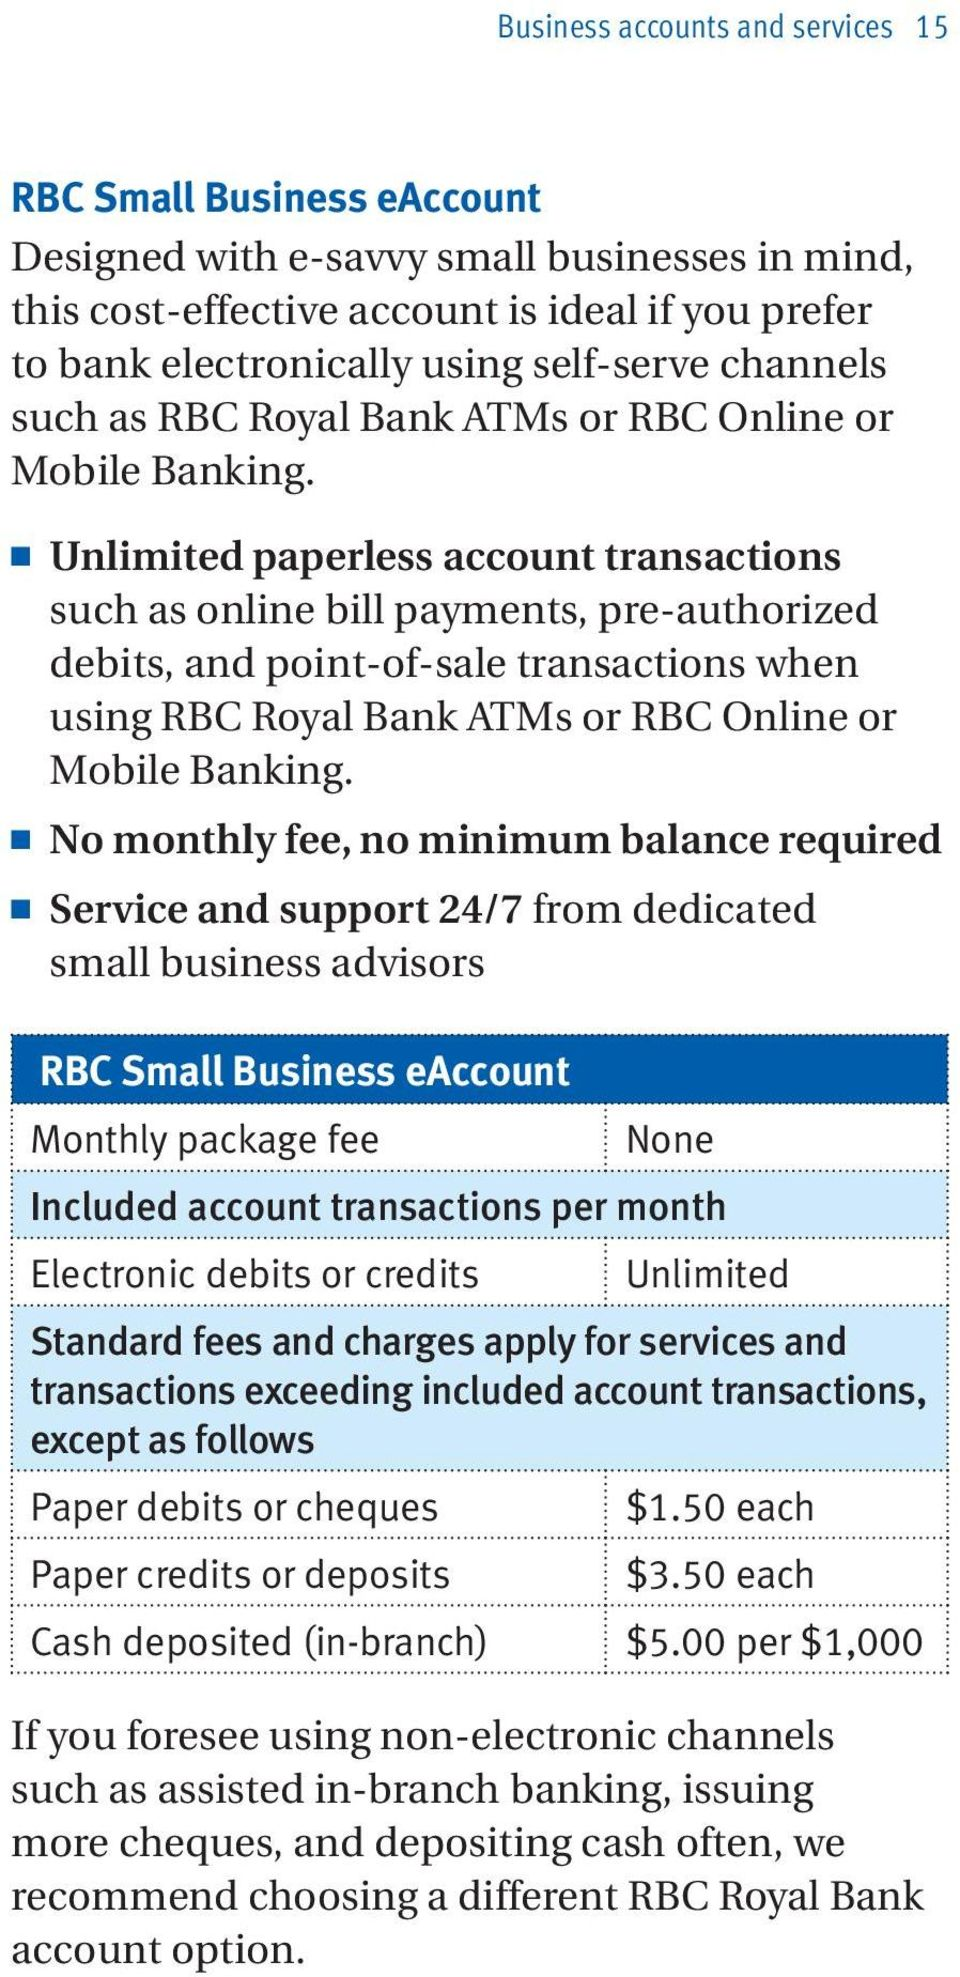 n Unlimited paperless account transactions such as online bill payments, pre-authorized debits, and point-of-sale transactions when using RBC Royal Bank ATMs or RBC Online or Mobile Banking.